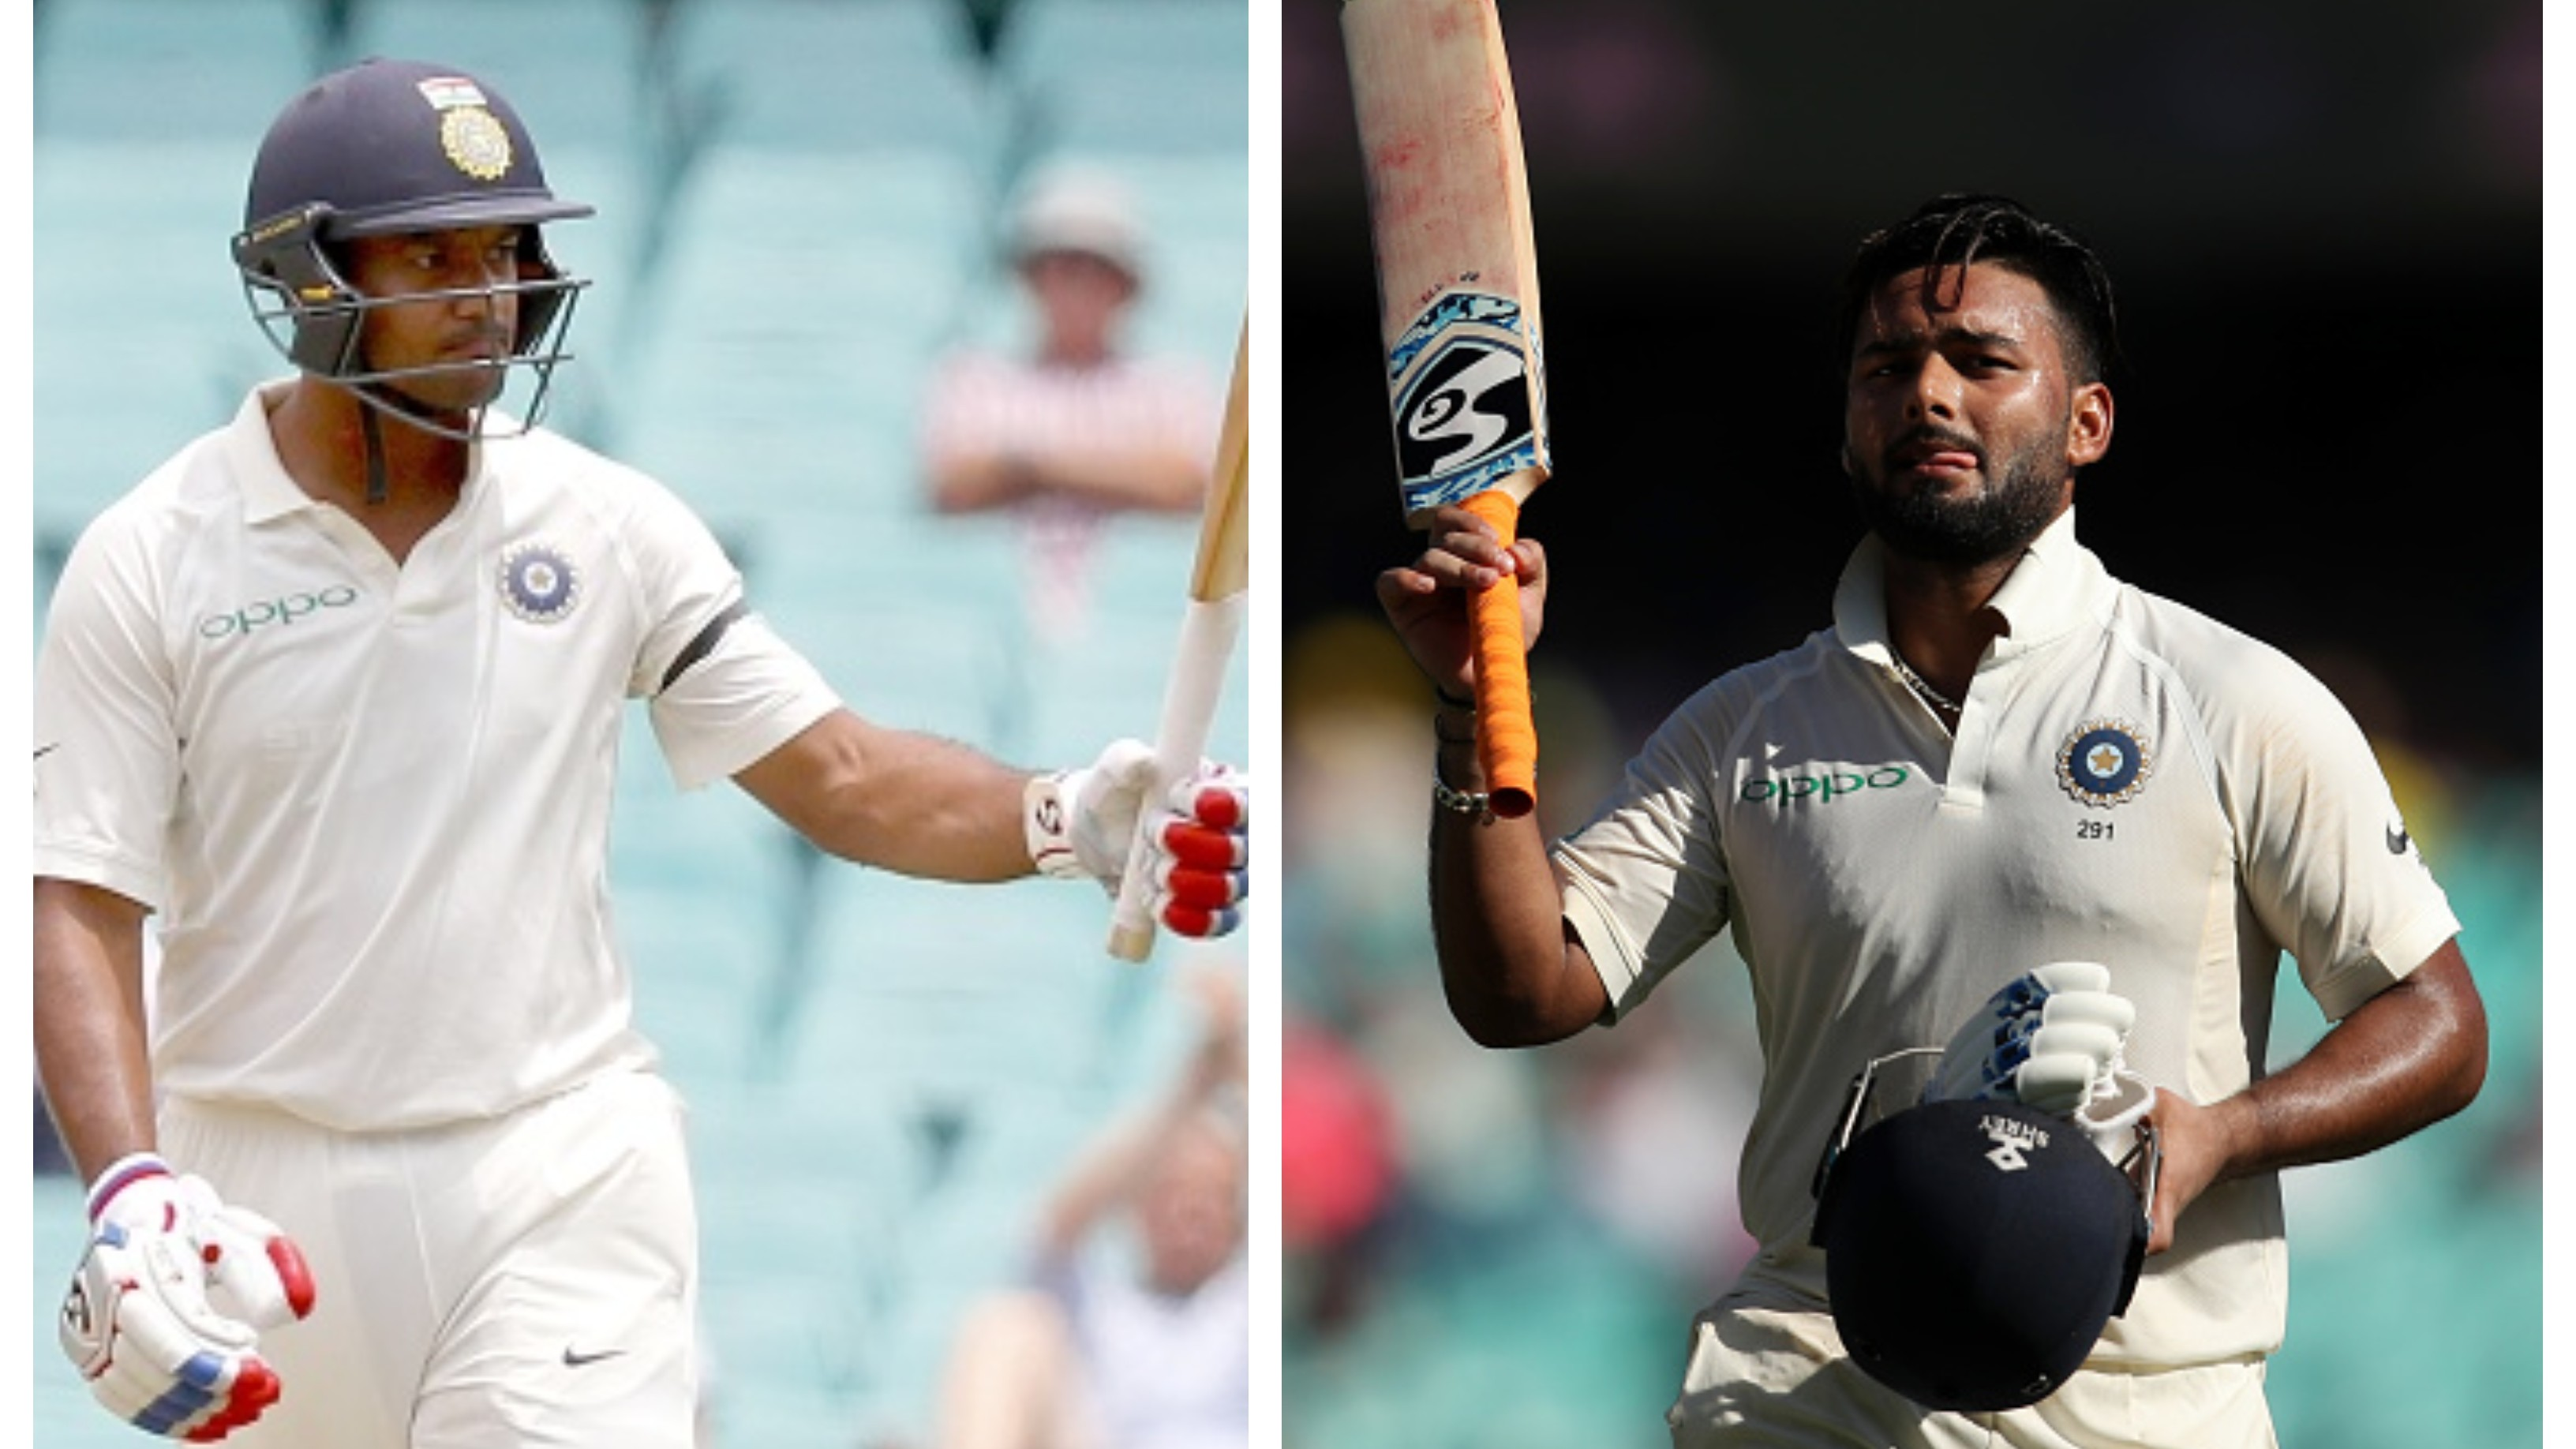 NZ XI v IND 2020: Agarwal regains form, Pant bids for Test return as warm-up game ends in draw